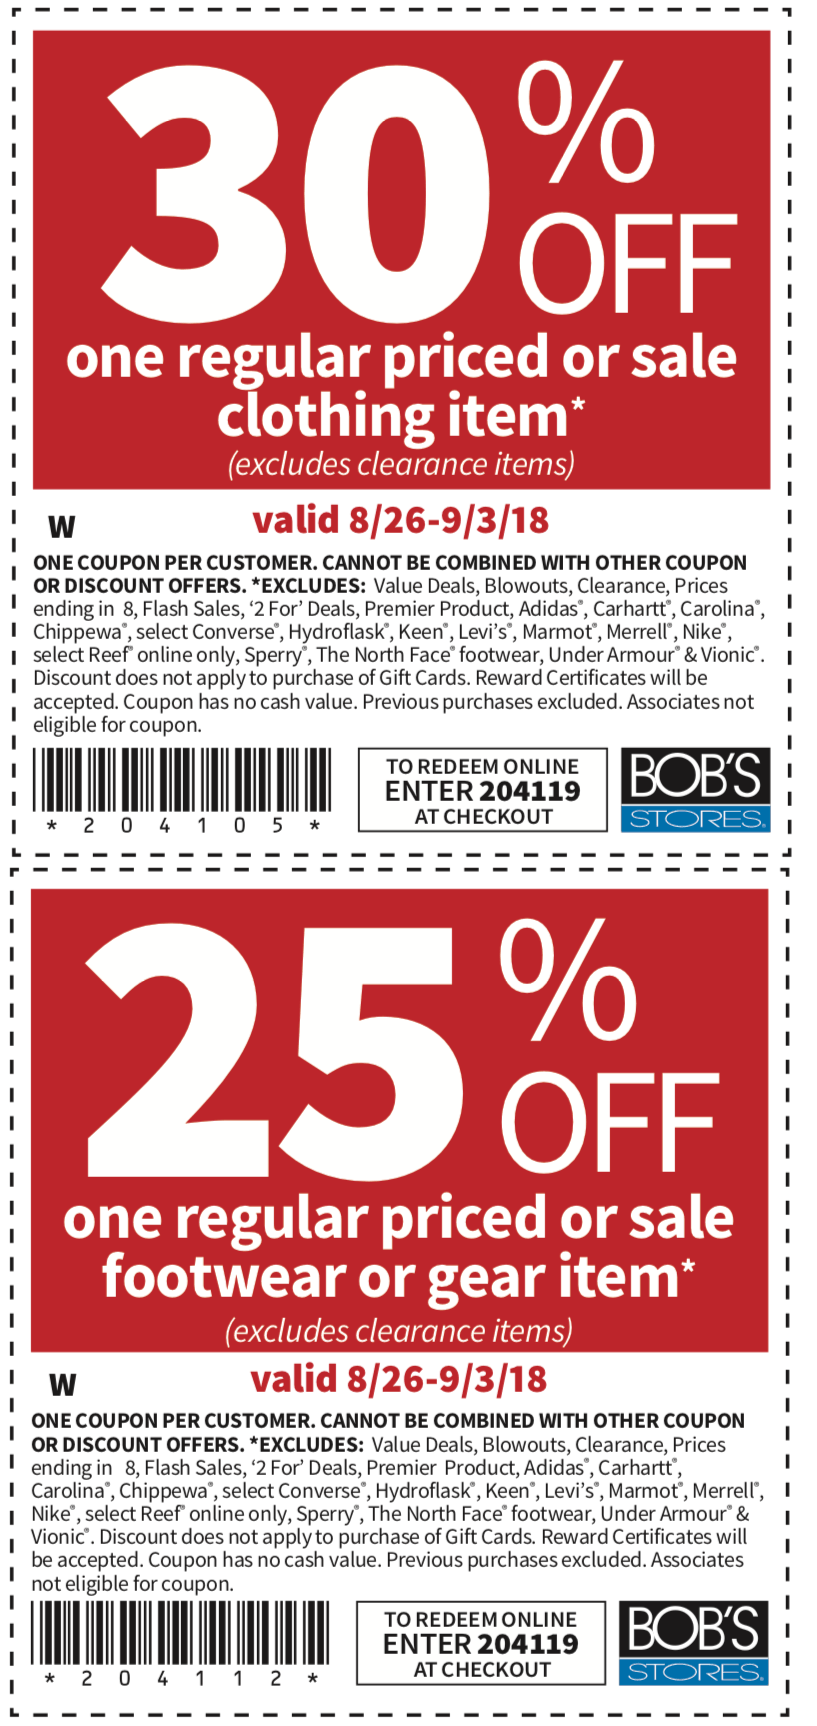 Bobs Stores coupons & promo code for [June 2020]